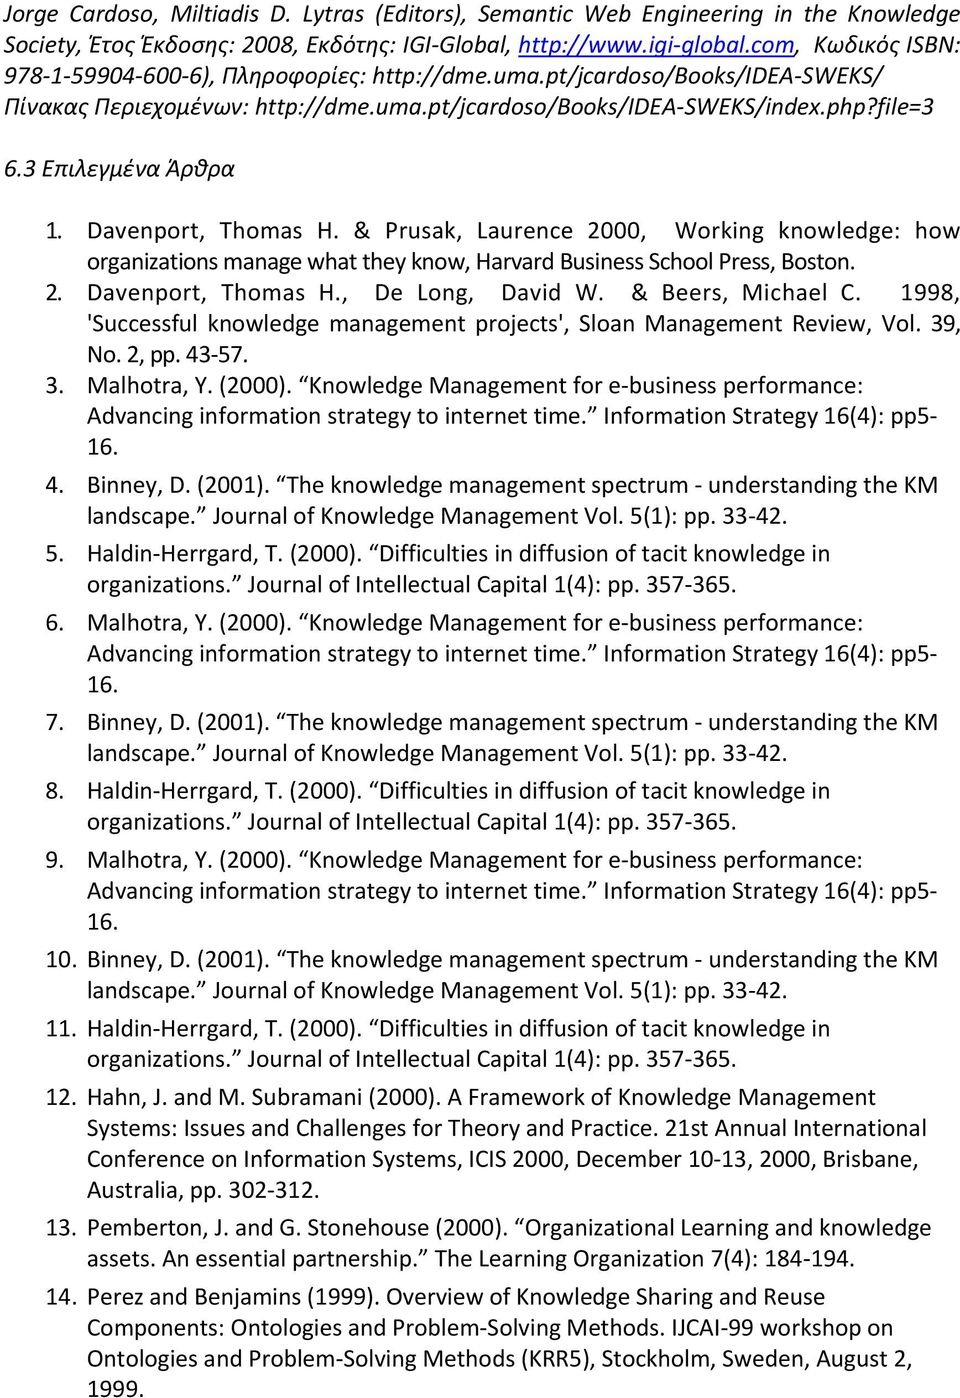 3 Επιλεγμένα Άρθρα 1. Davenport, Thomas H. & Prusak, Laurence 2000, Working knowledge: how organizations manage what they know, Harvard Business School Press, Boston. 2. Davenport, Thomas H., De Long, David W.